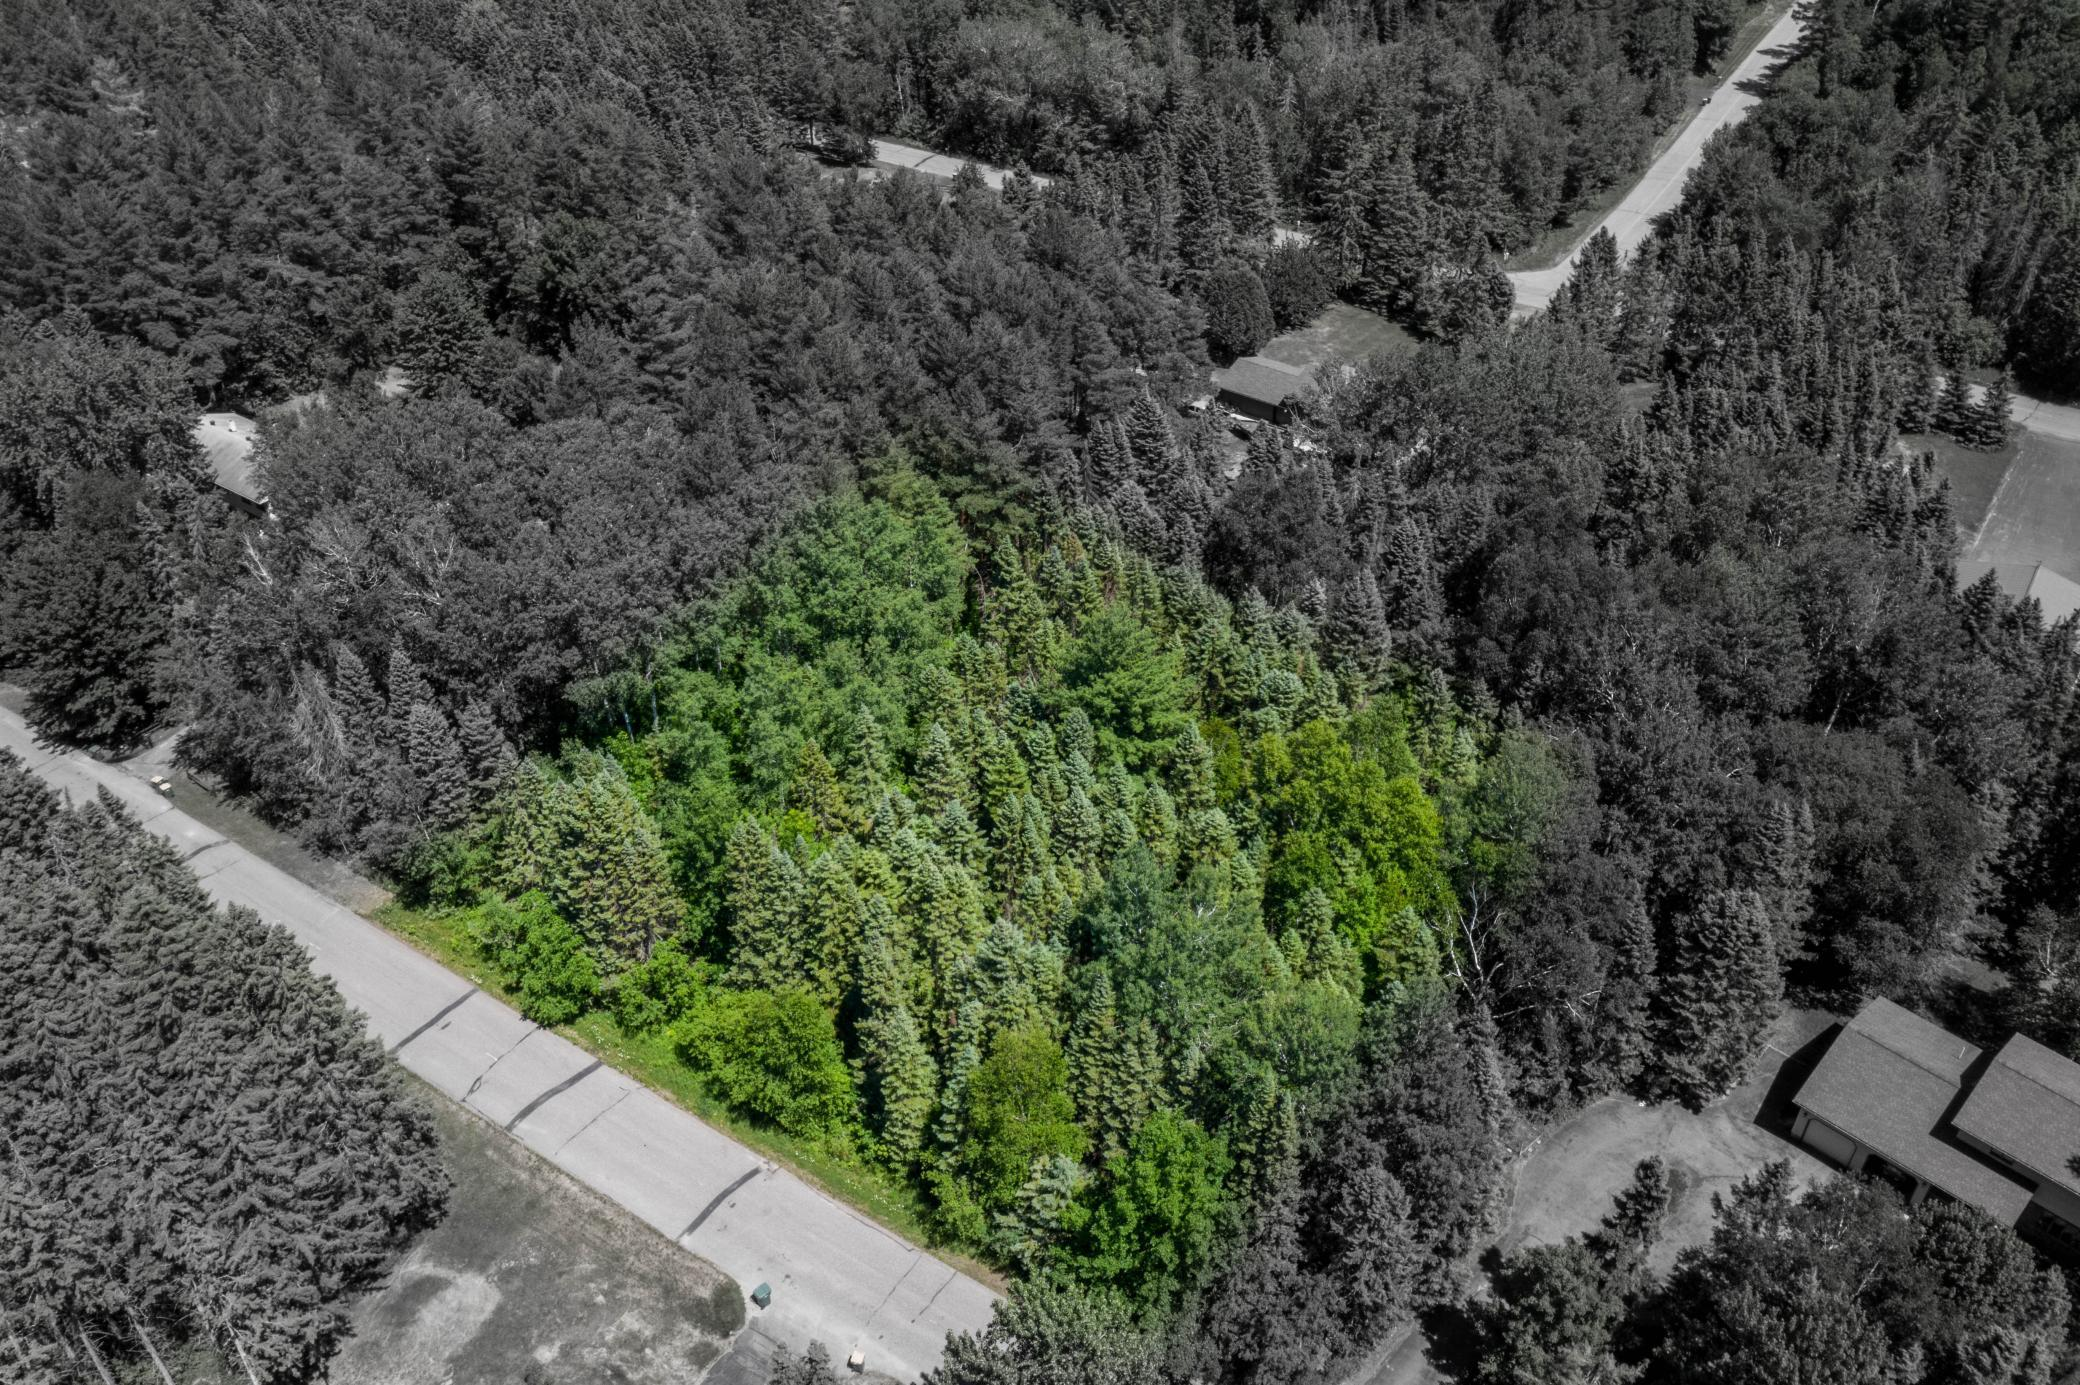 This SW Grand Rapids lot is one of the last undeveloped lots in the neighborhood. Pretty wooded spot for your new home with utilities in the street and nice elevation for a variety of floor plans. With its location close to the new west elementary, medical campus and blacktop walking/bike trails this is a location that's hard to beat.